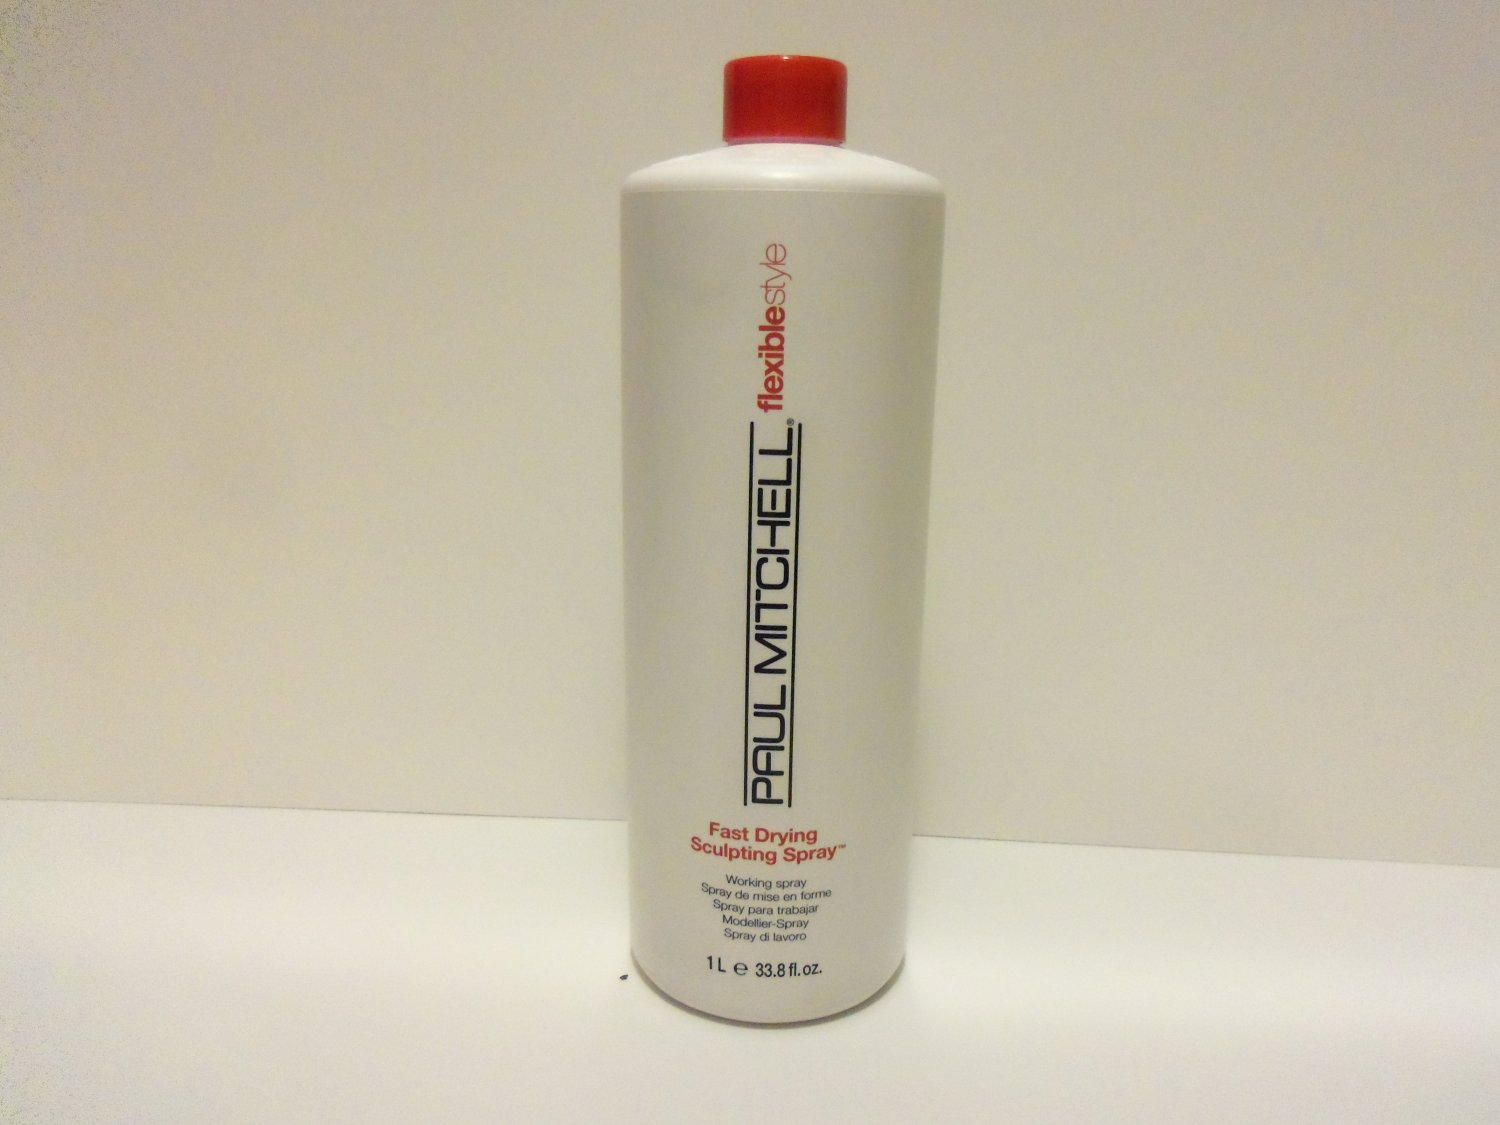 Paul Mitchell Fast Drying Sculpting Spray 33.8fl oz